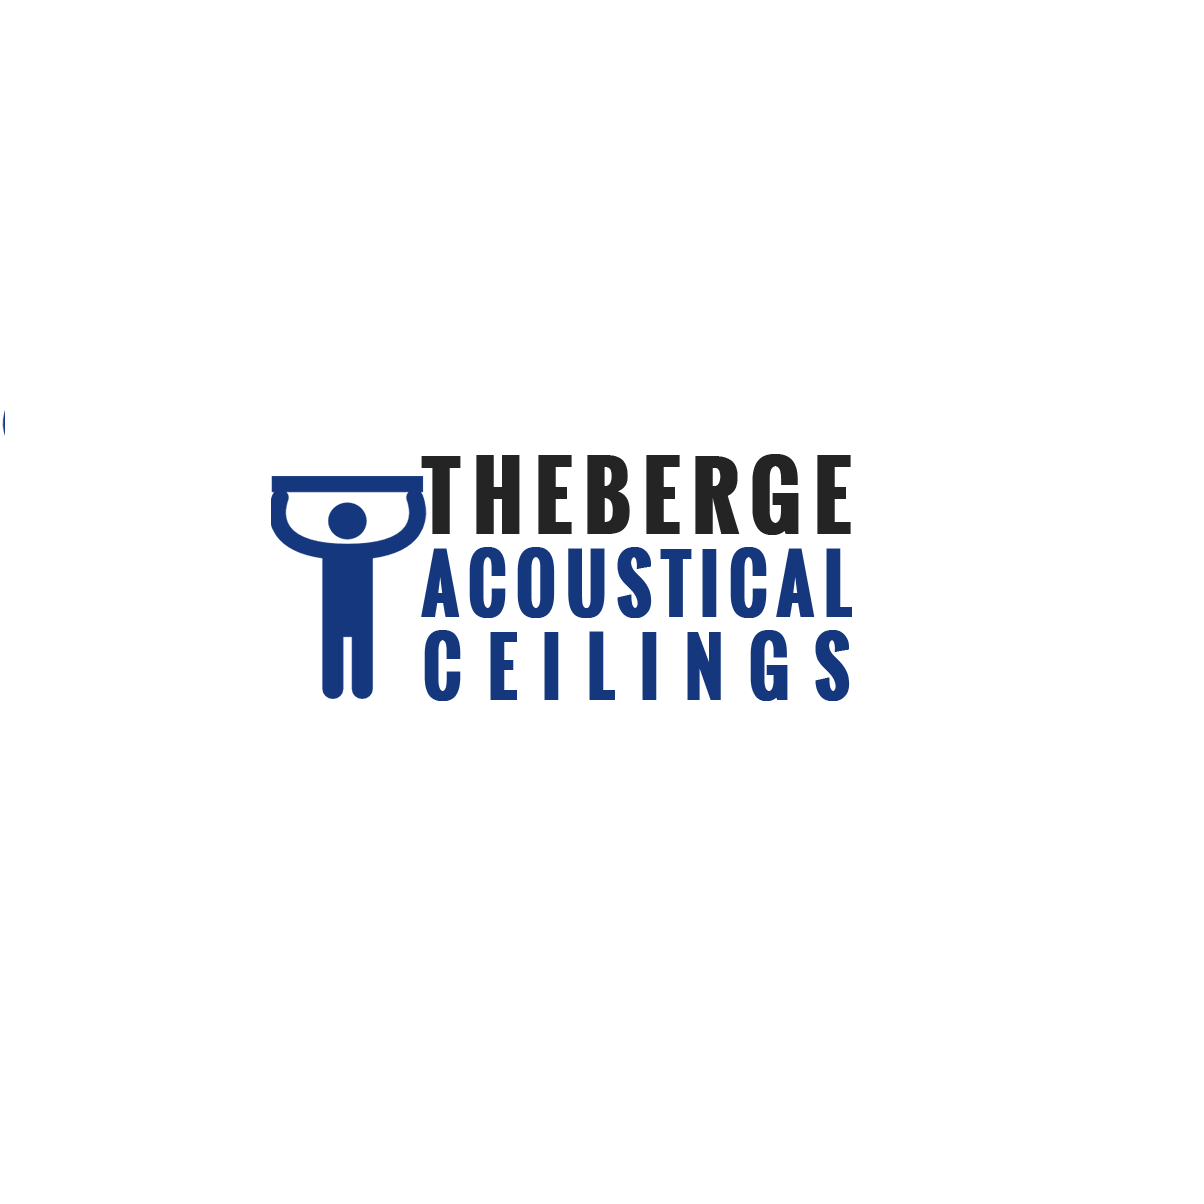 Theberge Acoustical Ceilings image 0